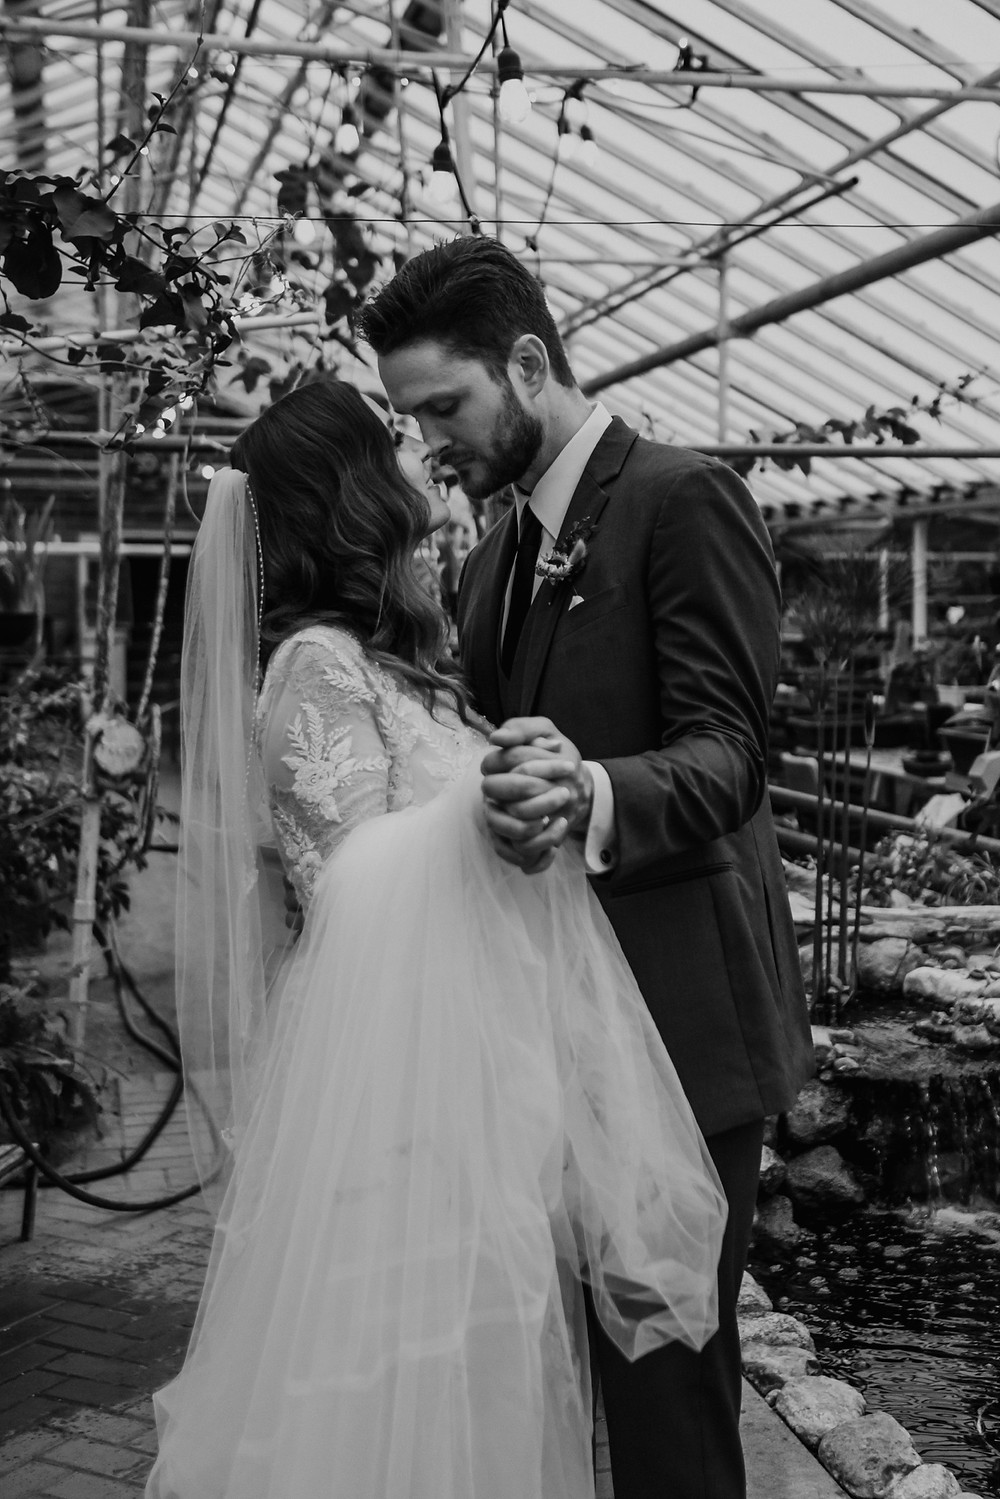 Blakc and white wedding photography. Photographed by Nicole Leanne Photography.